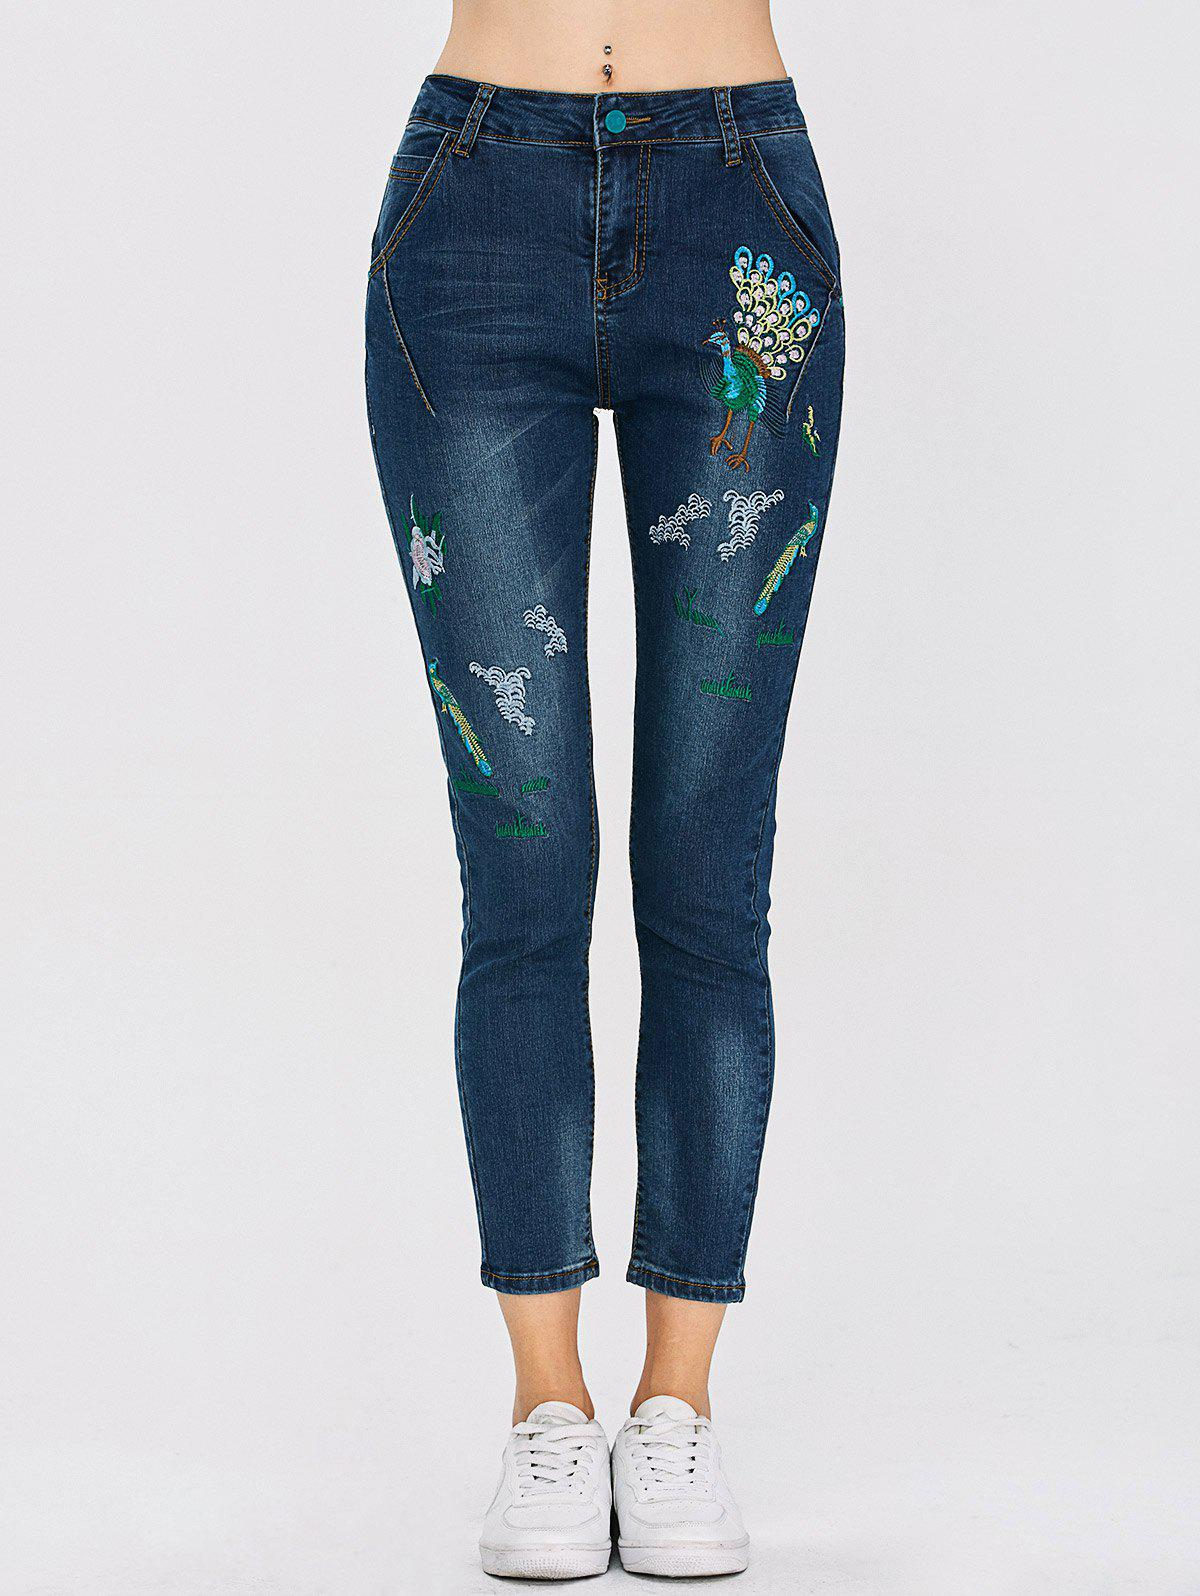 Peacock Embroidered High Waist JeansWomen<br><br><br>Size: 30<br>Color: DEEP BLUE